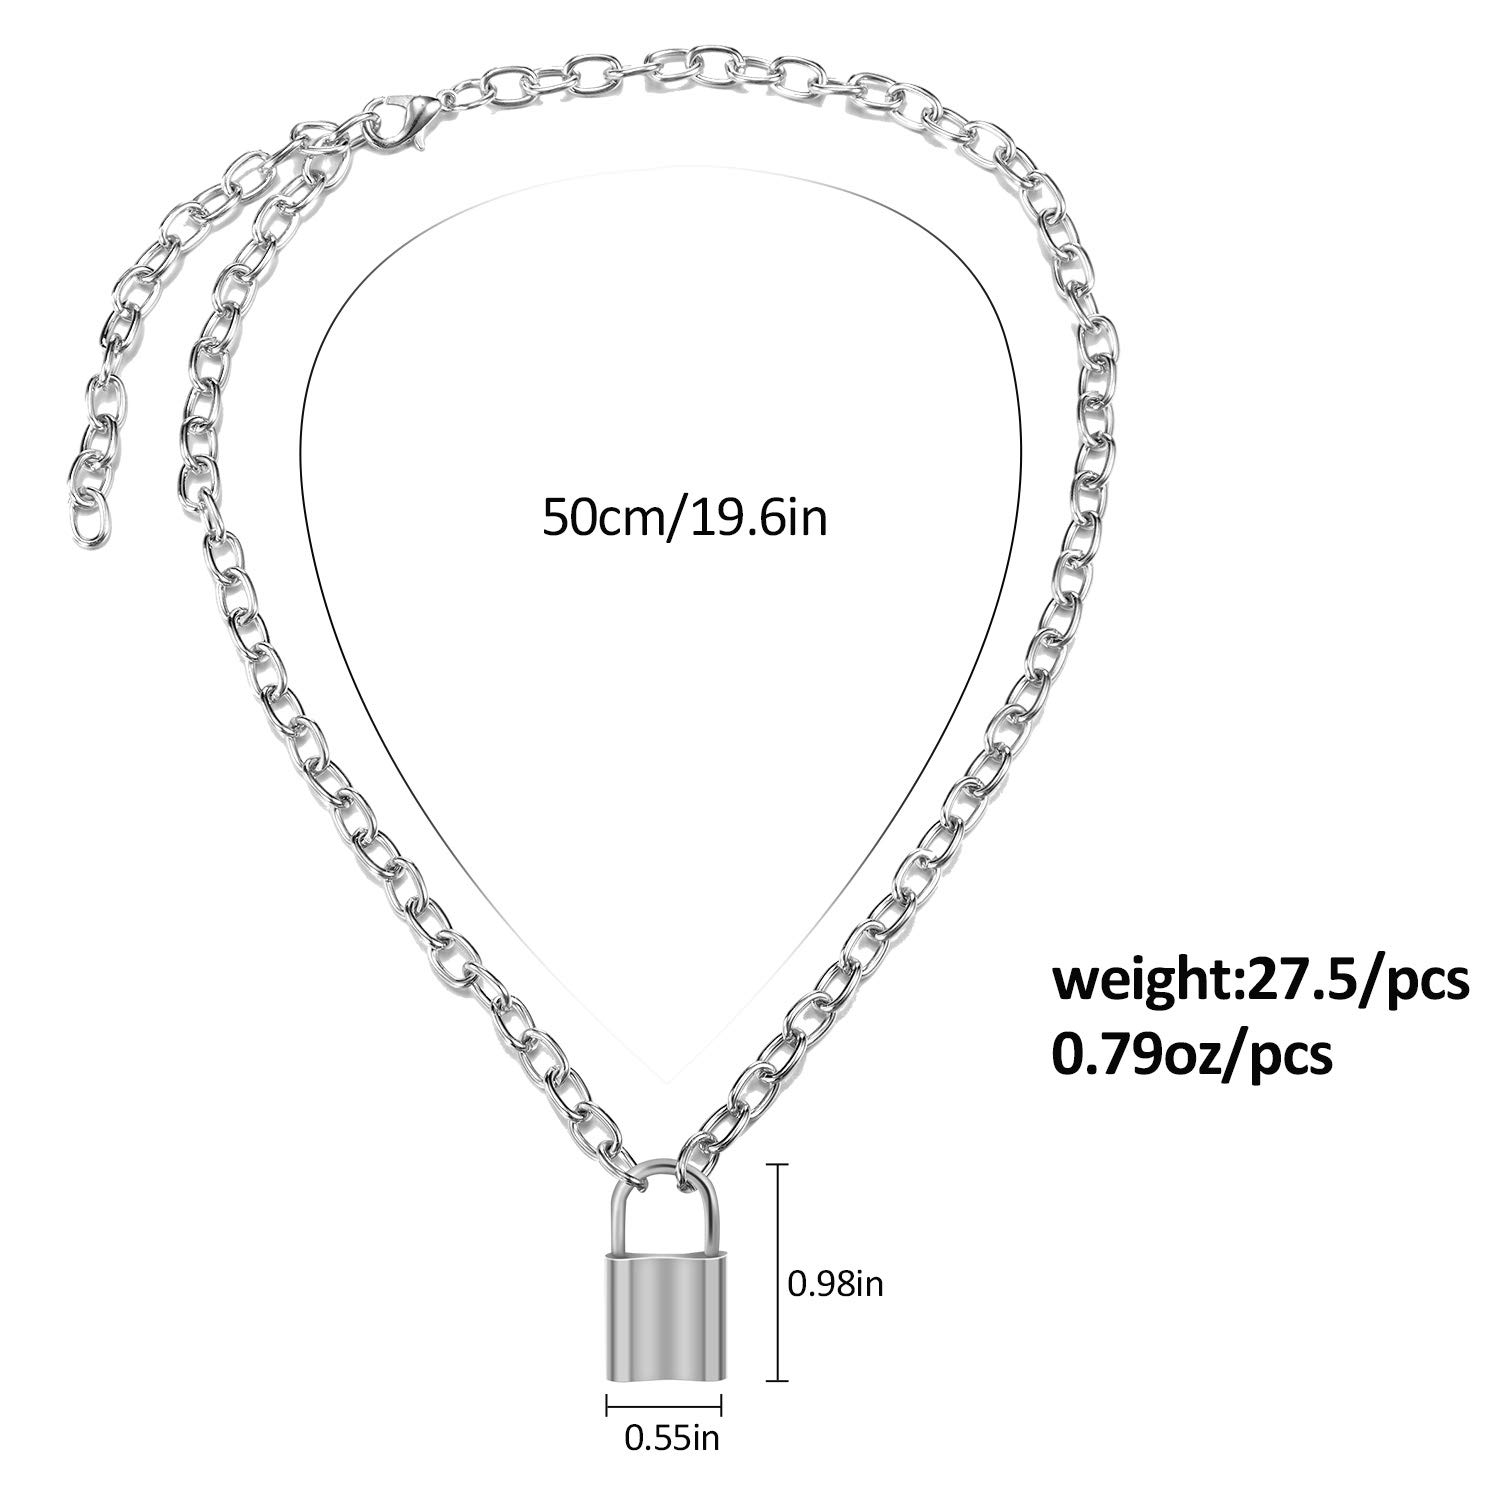 Yaomiao 2 Pack Y Lock Pendant Necklace Simple Chain Necklace Lock Chain Jewelry Long Multilayer Chain Women Girls Gift